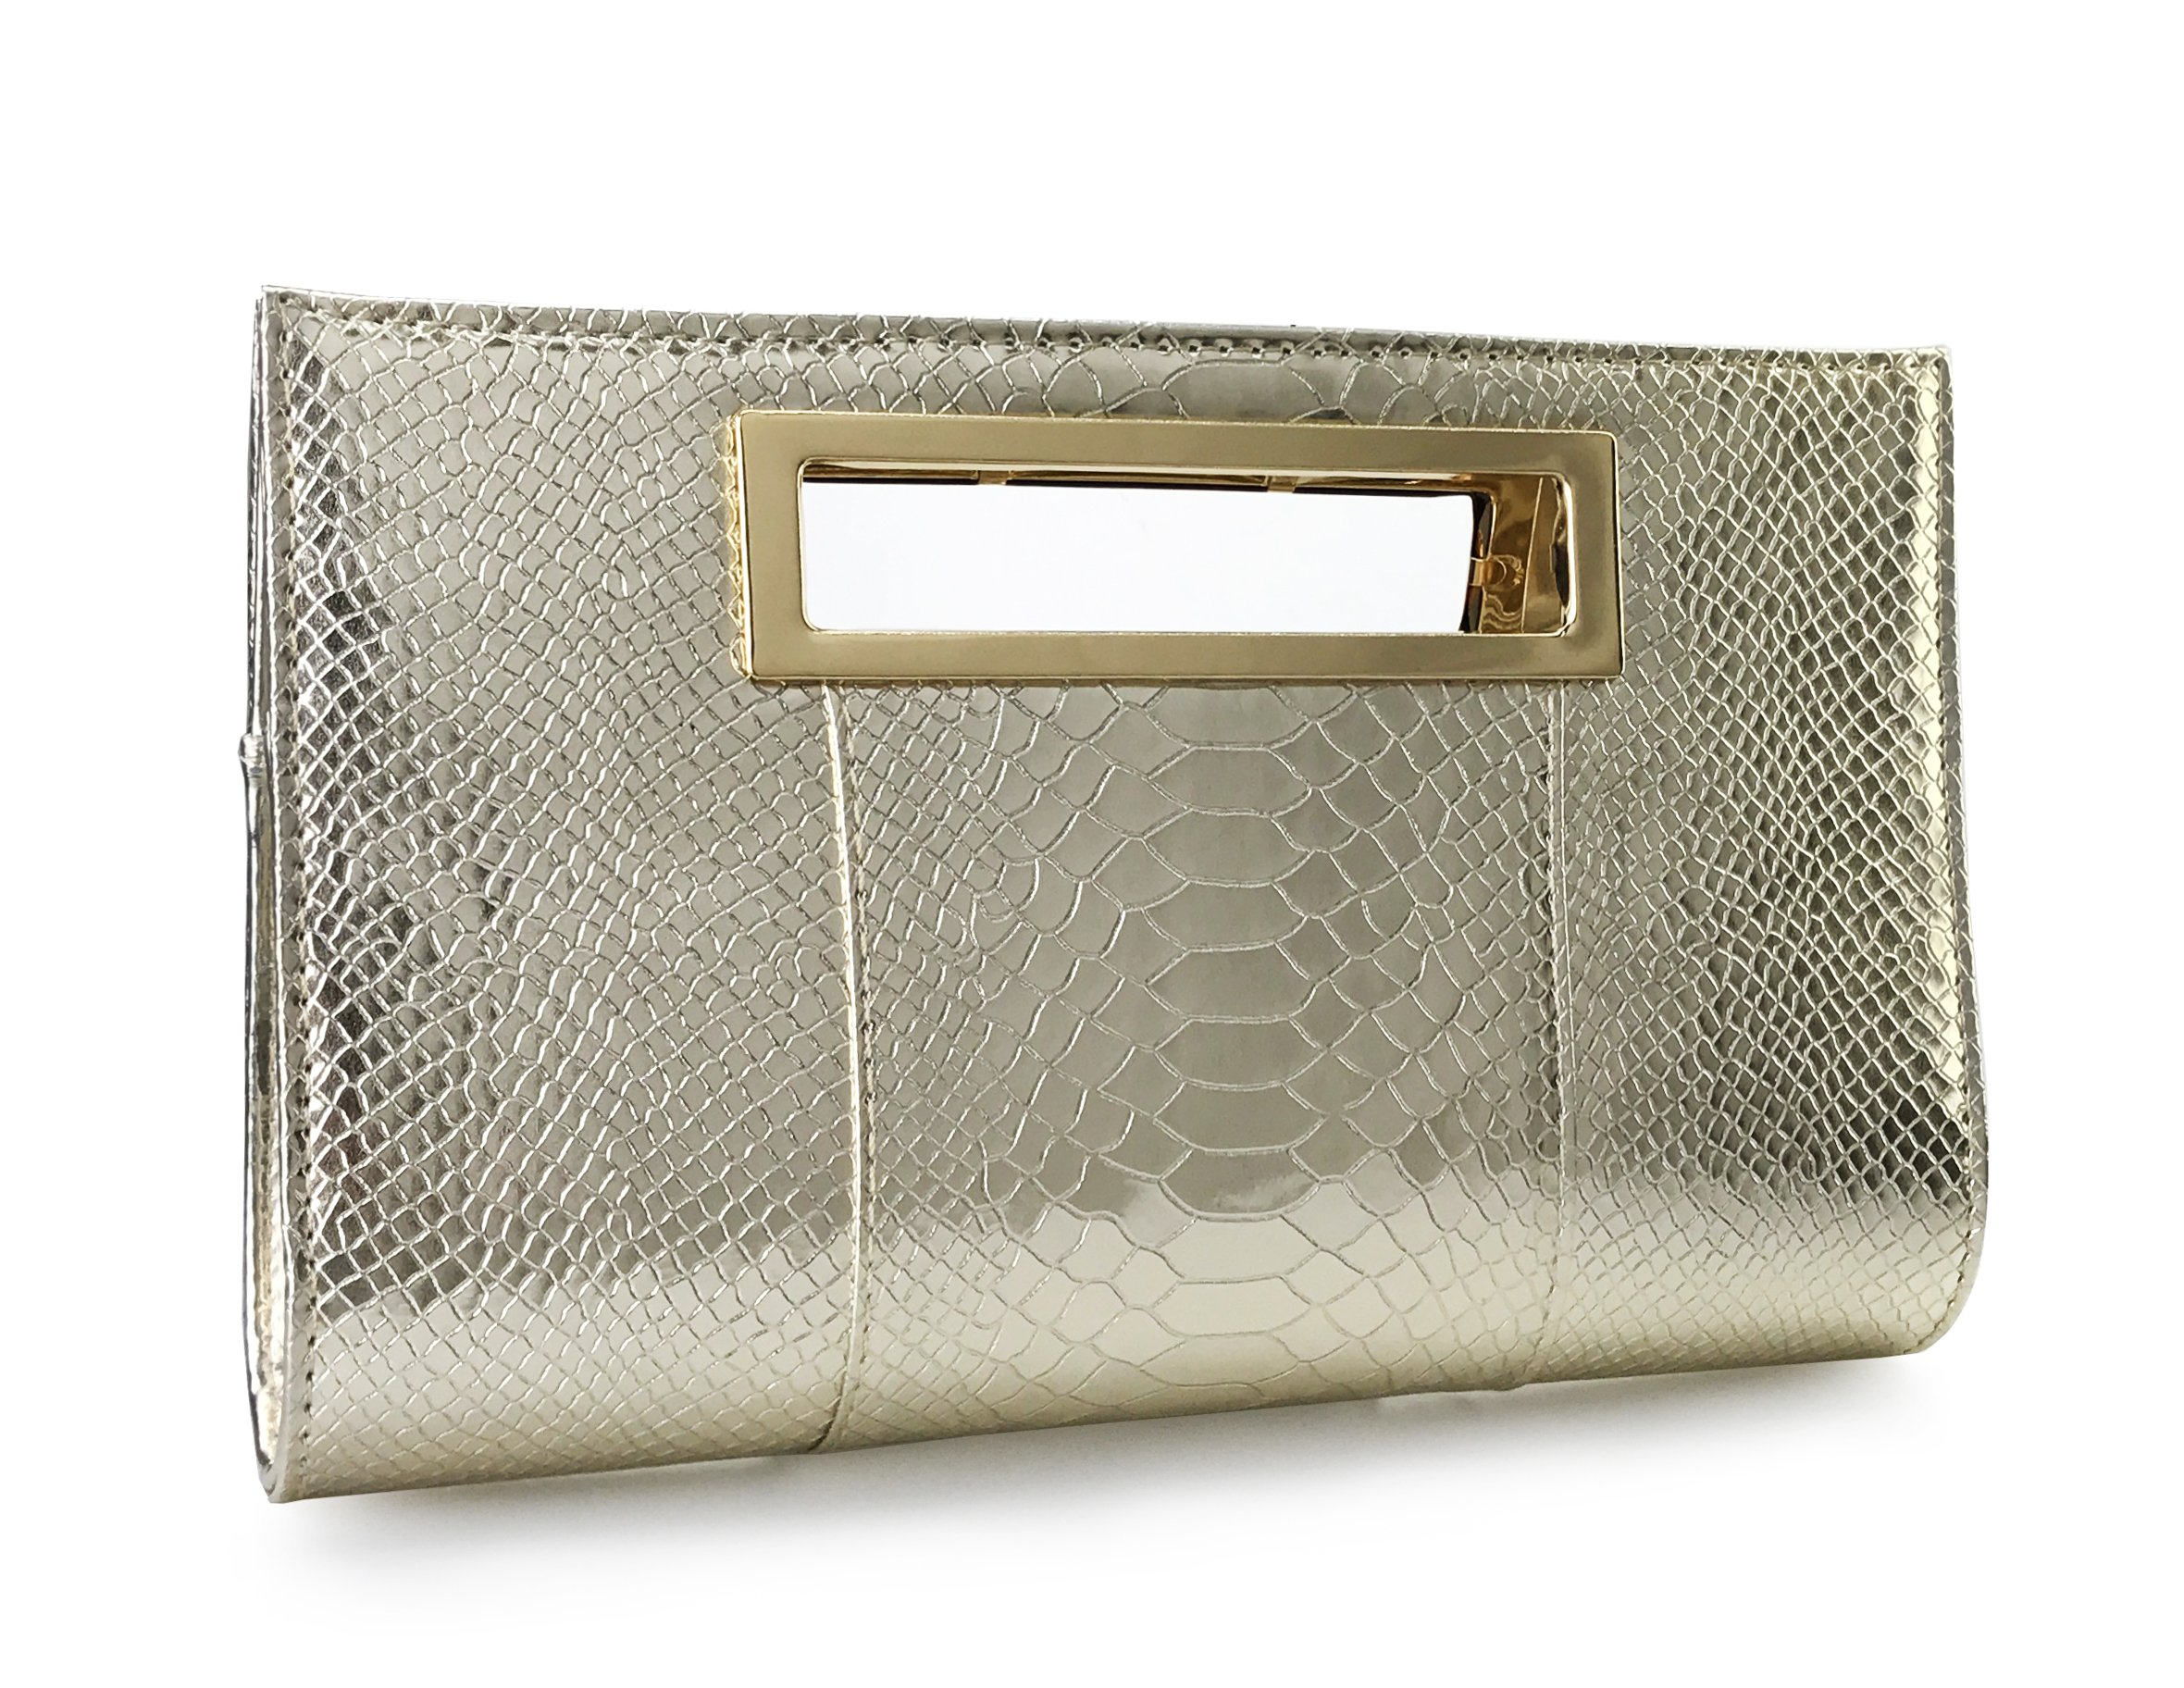 Hoxis New Color Crocodile Pattern Faux Patent Leather Cut it out Clutch with Shoulder Strap Womens Handbag(Metallic)